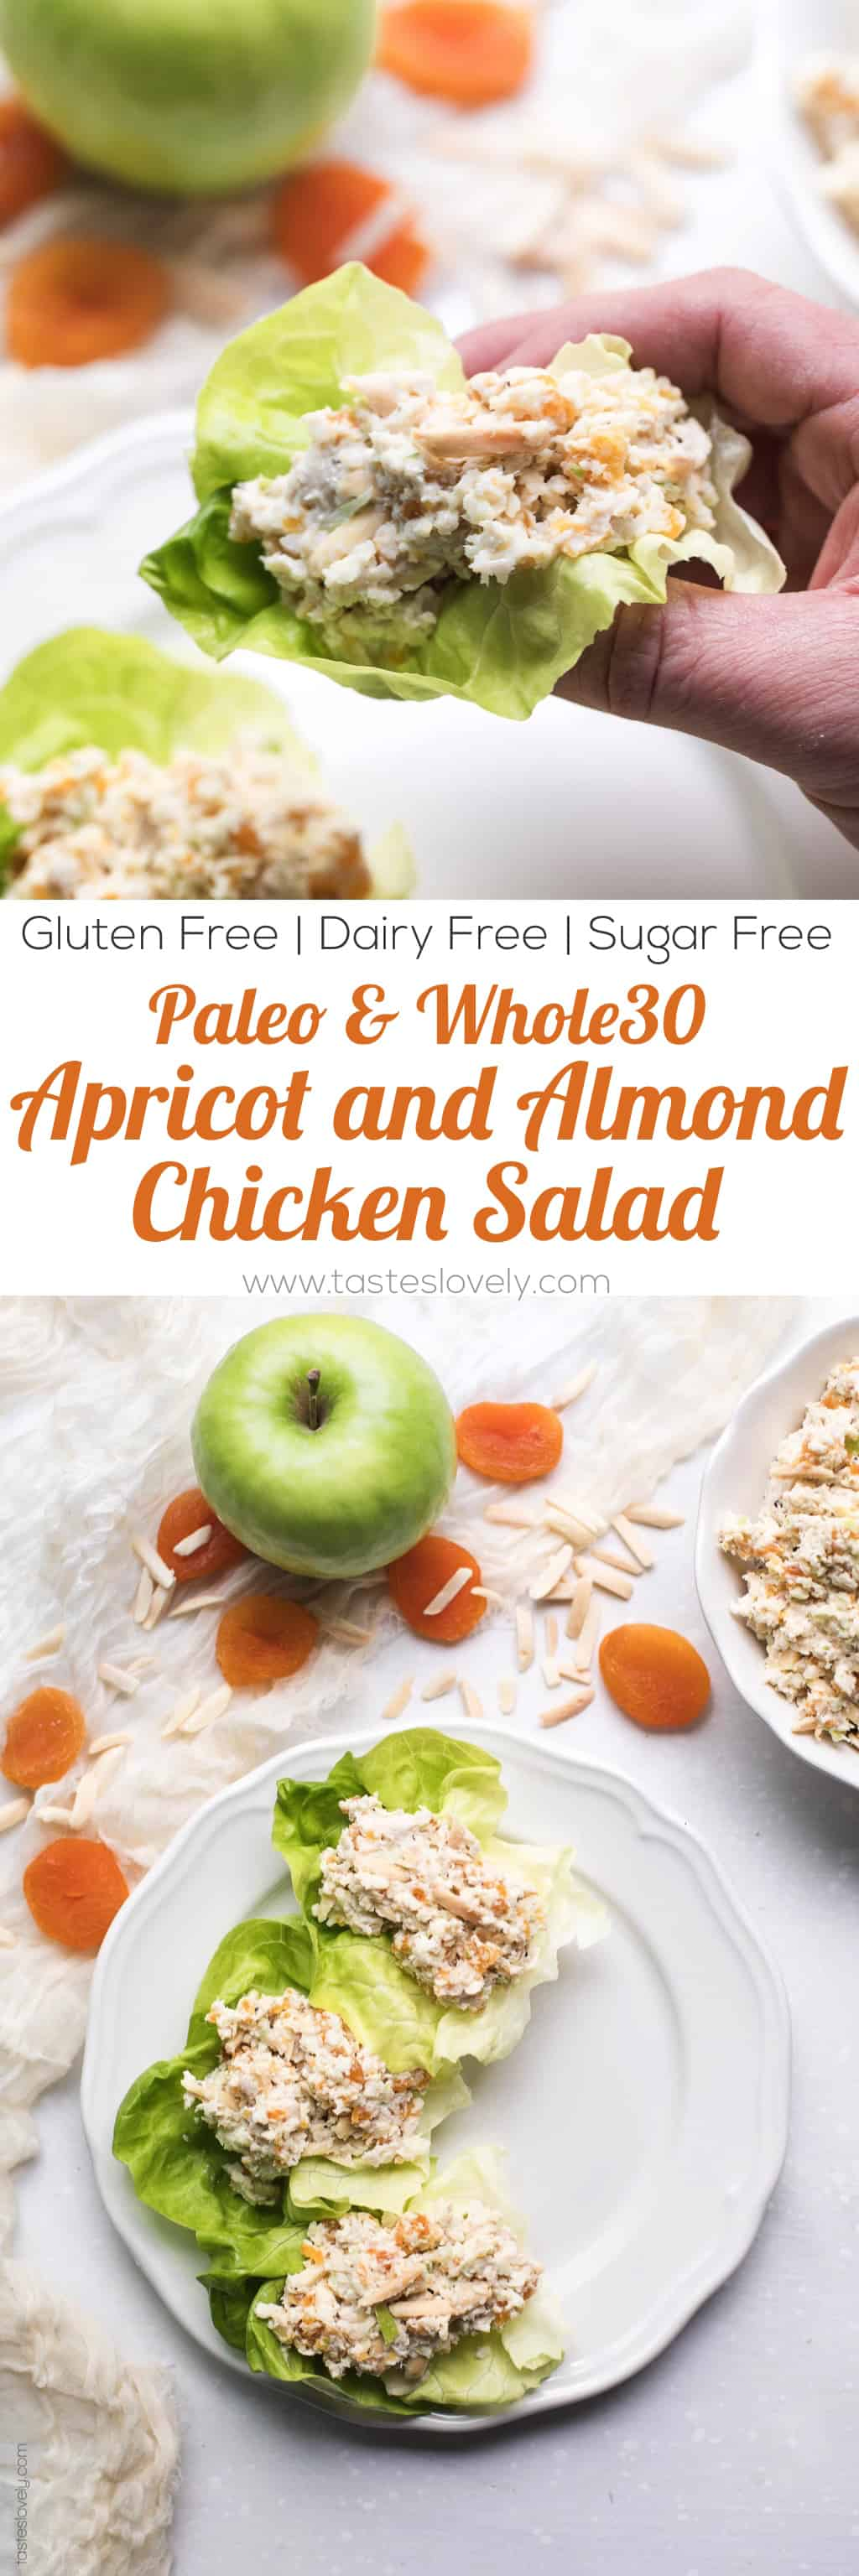 Paleo & Whole30 Apricot and Almond Chicken Salad Recipe - a light and flavorful chicken salad. My favorite meal prep lunch for the week! Gluten free, grain free, dairy free, sugar free, clean eating.